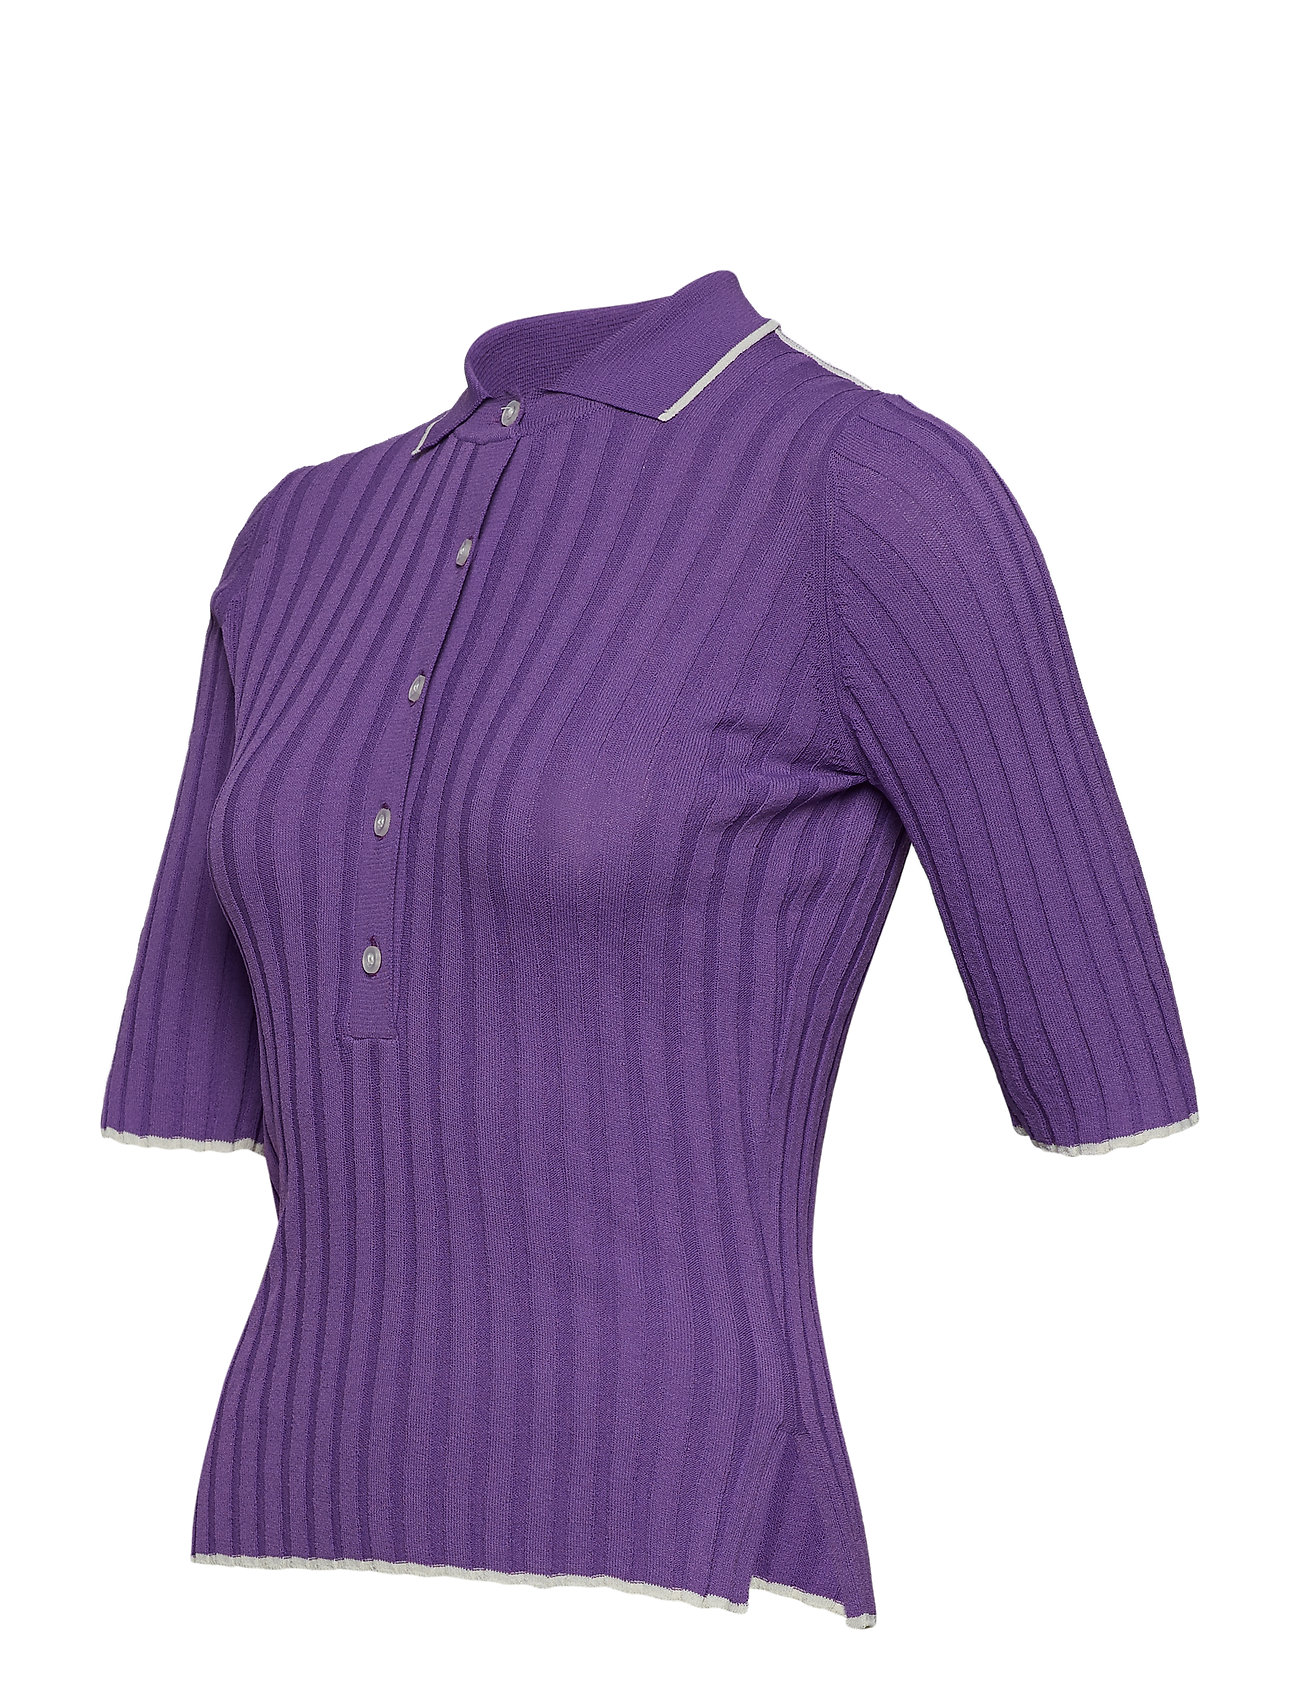 EllapurpleDagmar EllapurpleDagmar EllapurpleDagmar EllapurpleDagmar EllapurpleDagmar EllapurpleDagmar EllapurpleDagmar EllapurpleDagmar EllapurpleDagmar EllapurpleDagmar EllapurpleDagmar EllapurpleDagmar EllapurpleDagmar EllapurpleDagmar EllapurpleDagmar 2EH9IDW